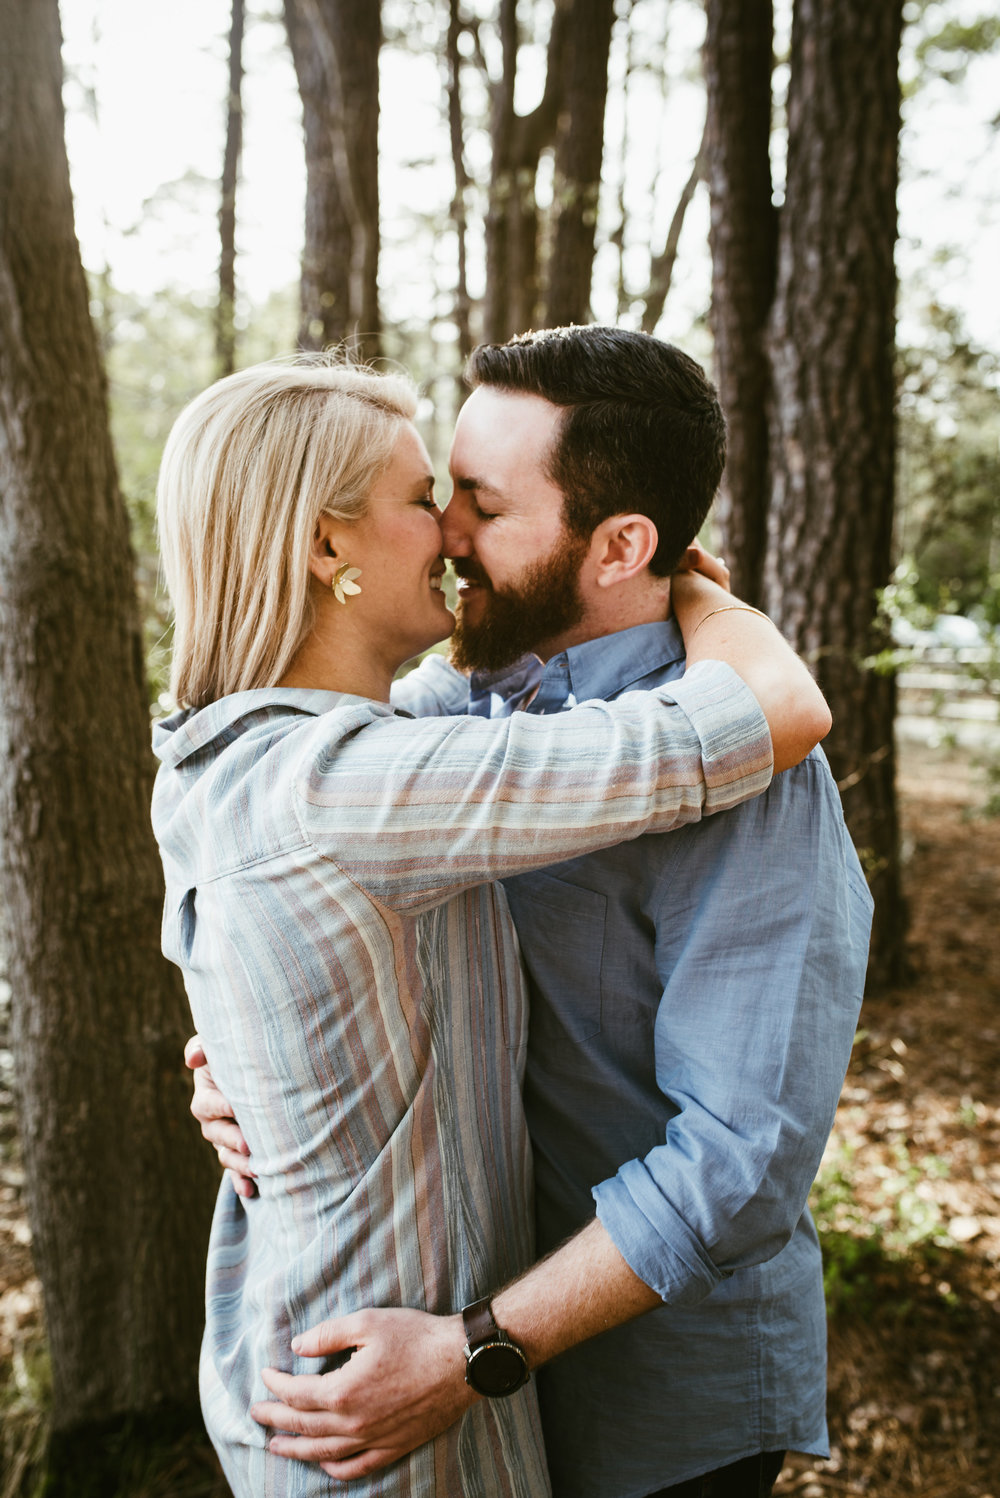 Downtown Raleigh Engagement - Lifestyle Engagement Session - Crank Arm Brewery Engagement Session - Lake Johnson Park Engagement Session